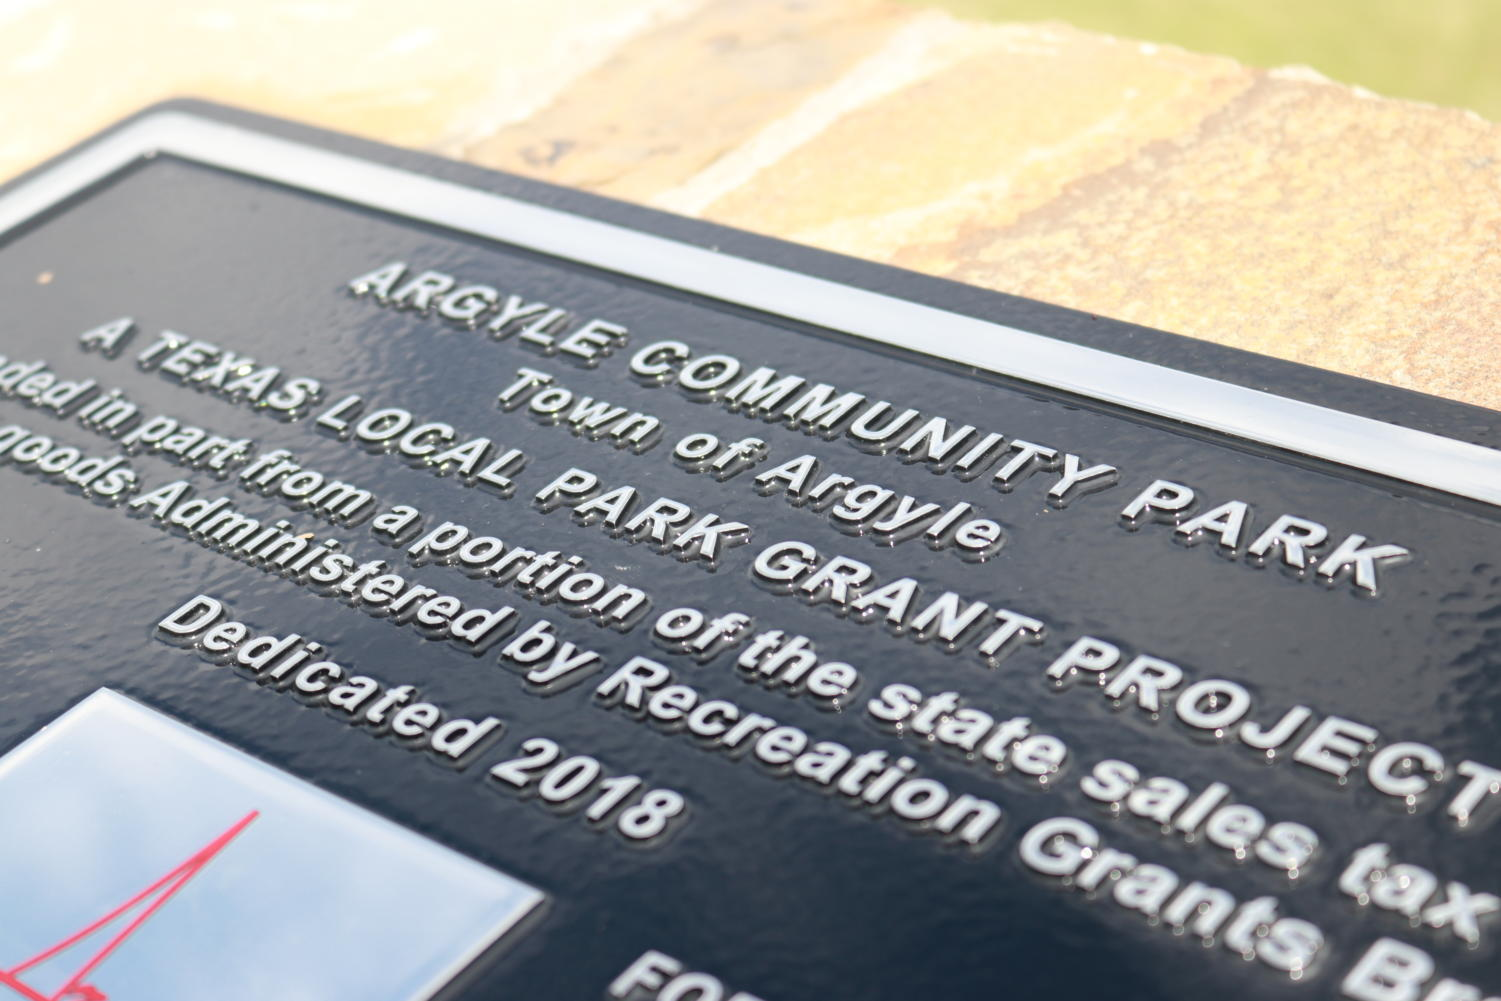 With it's grand opening on May 5, 2018, Argyle Community Park is the first of its kind in the town.